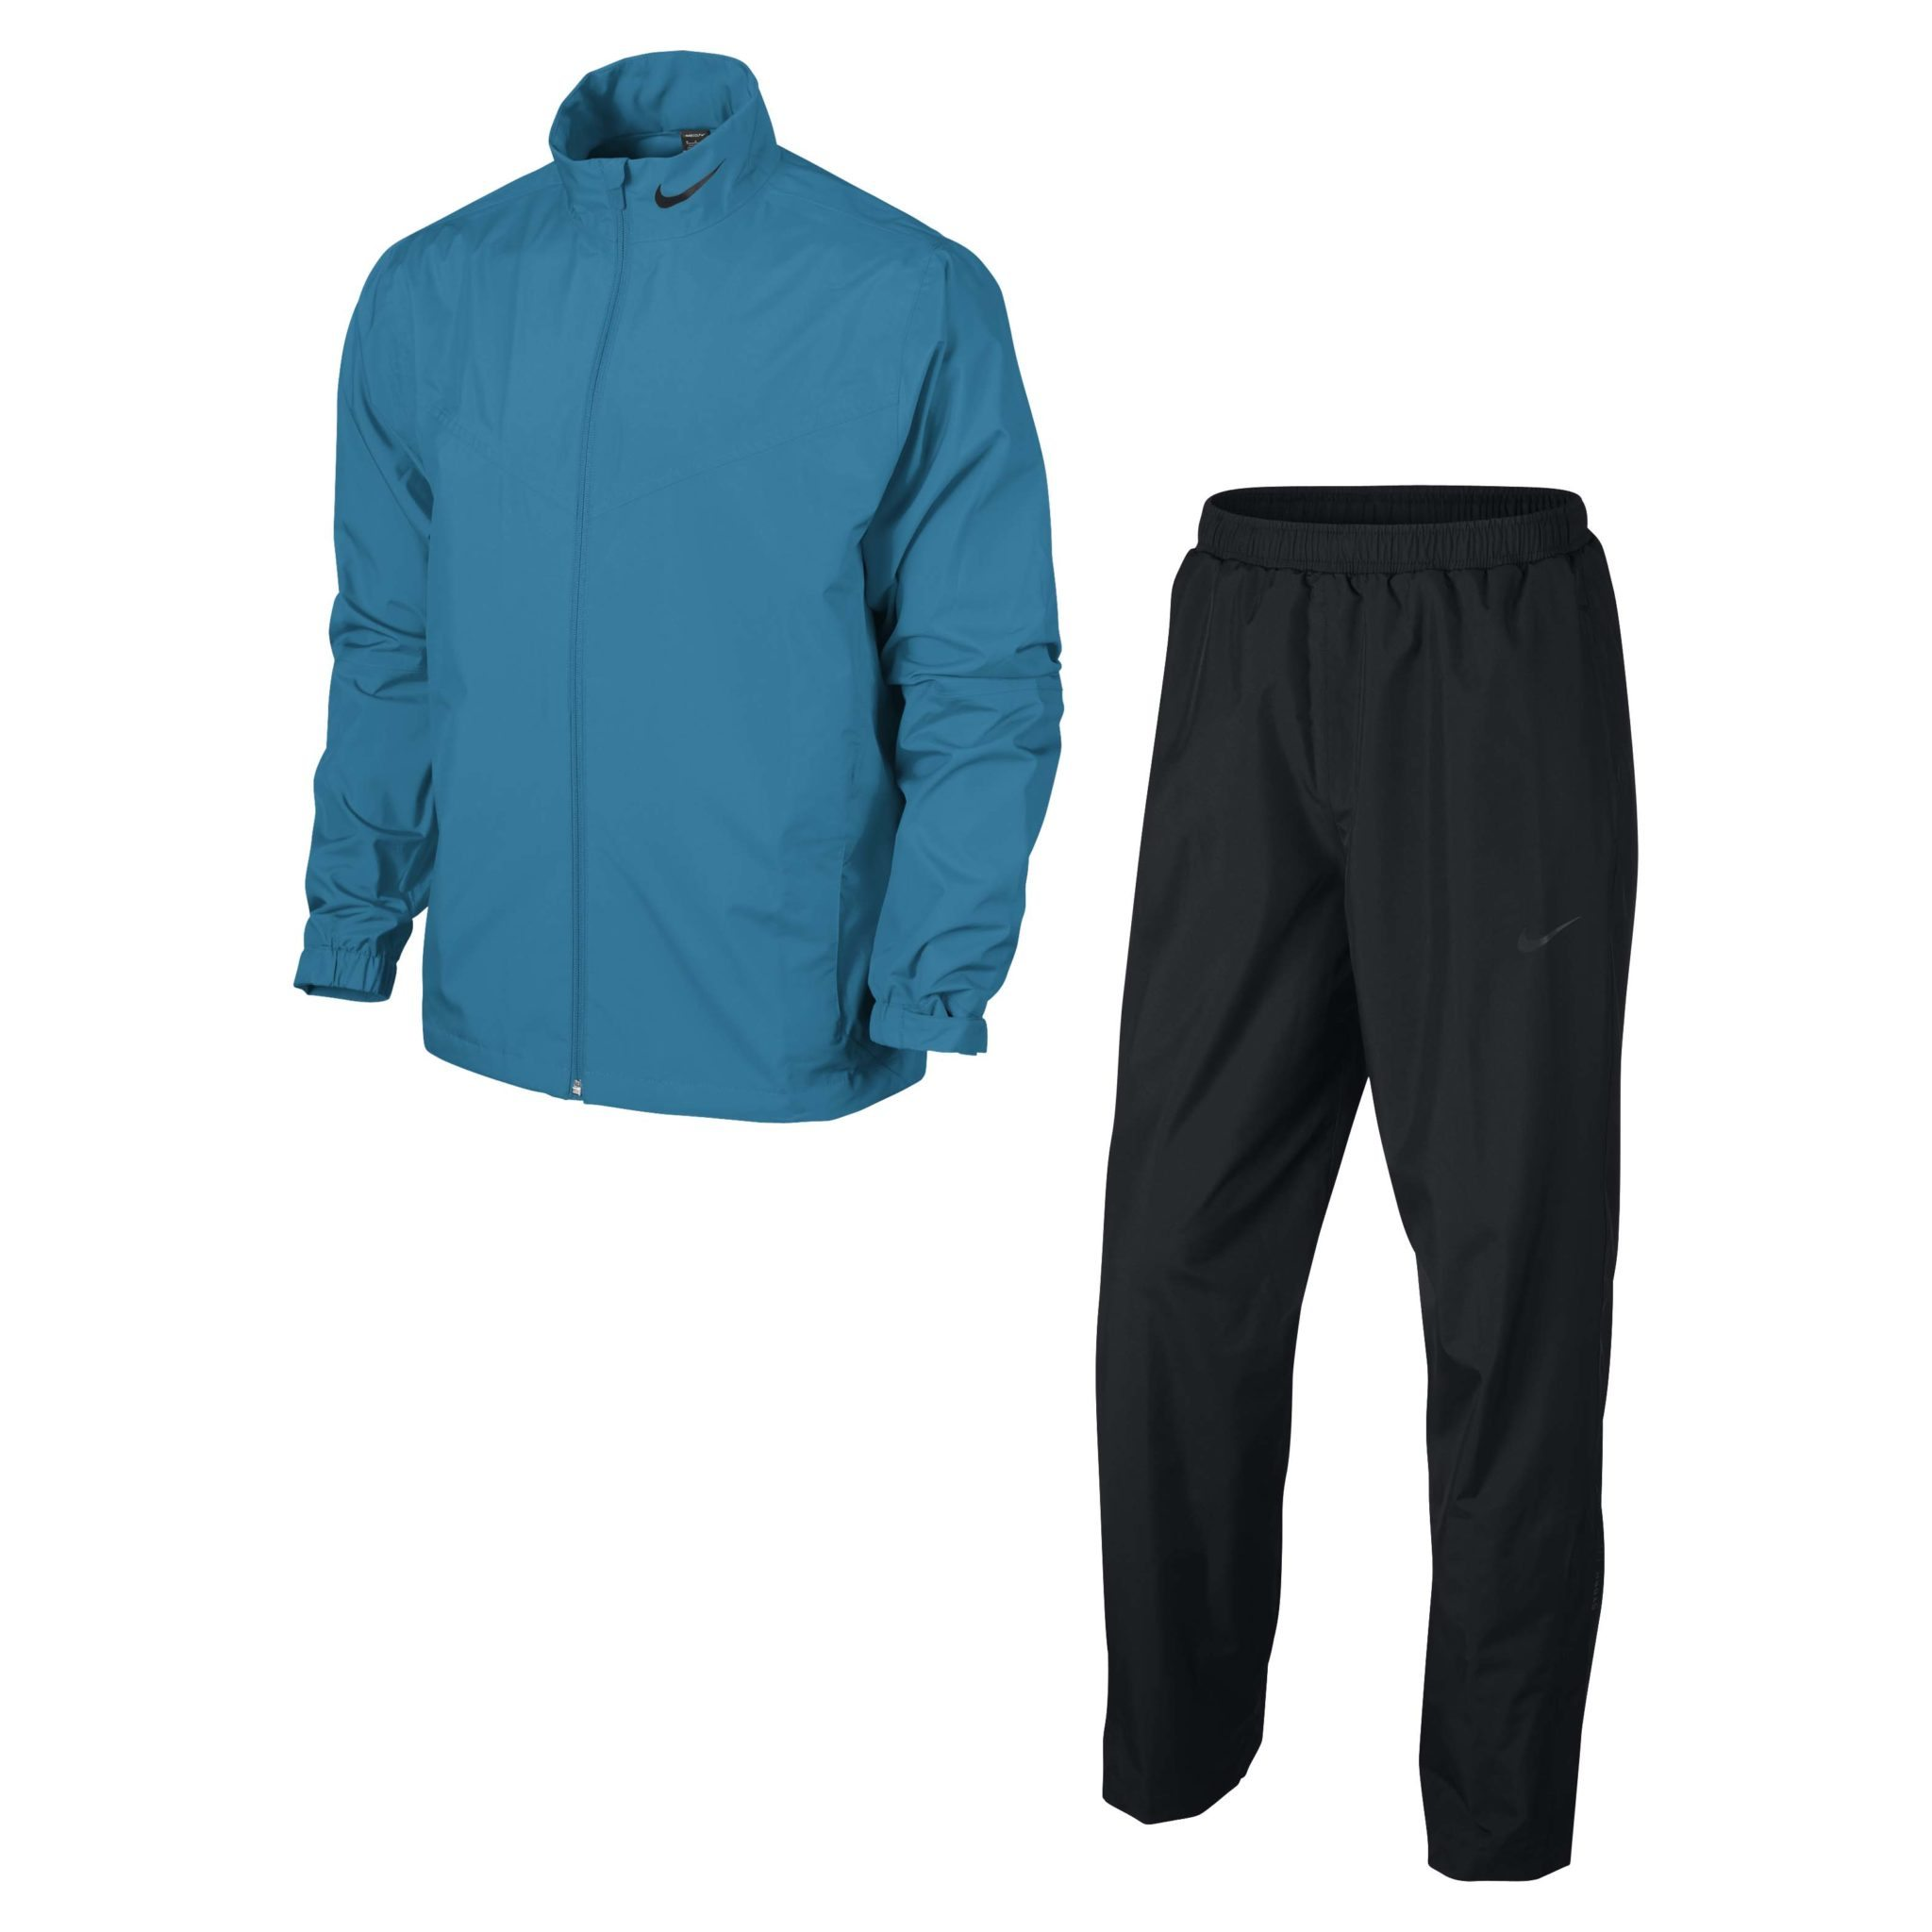 Nike Golf Mens New Storm-Fit Packable Rain Suit - Light Blue Lacquer/Black/Black